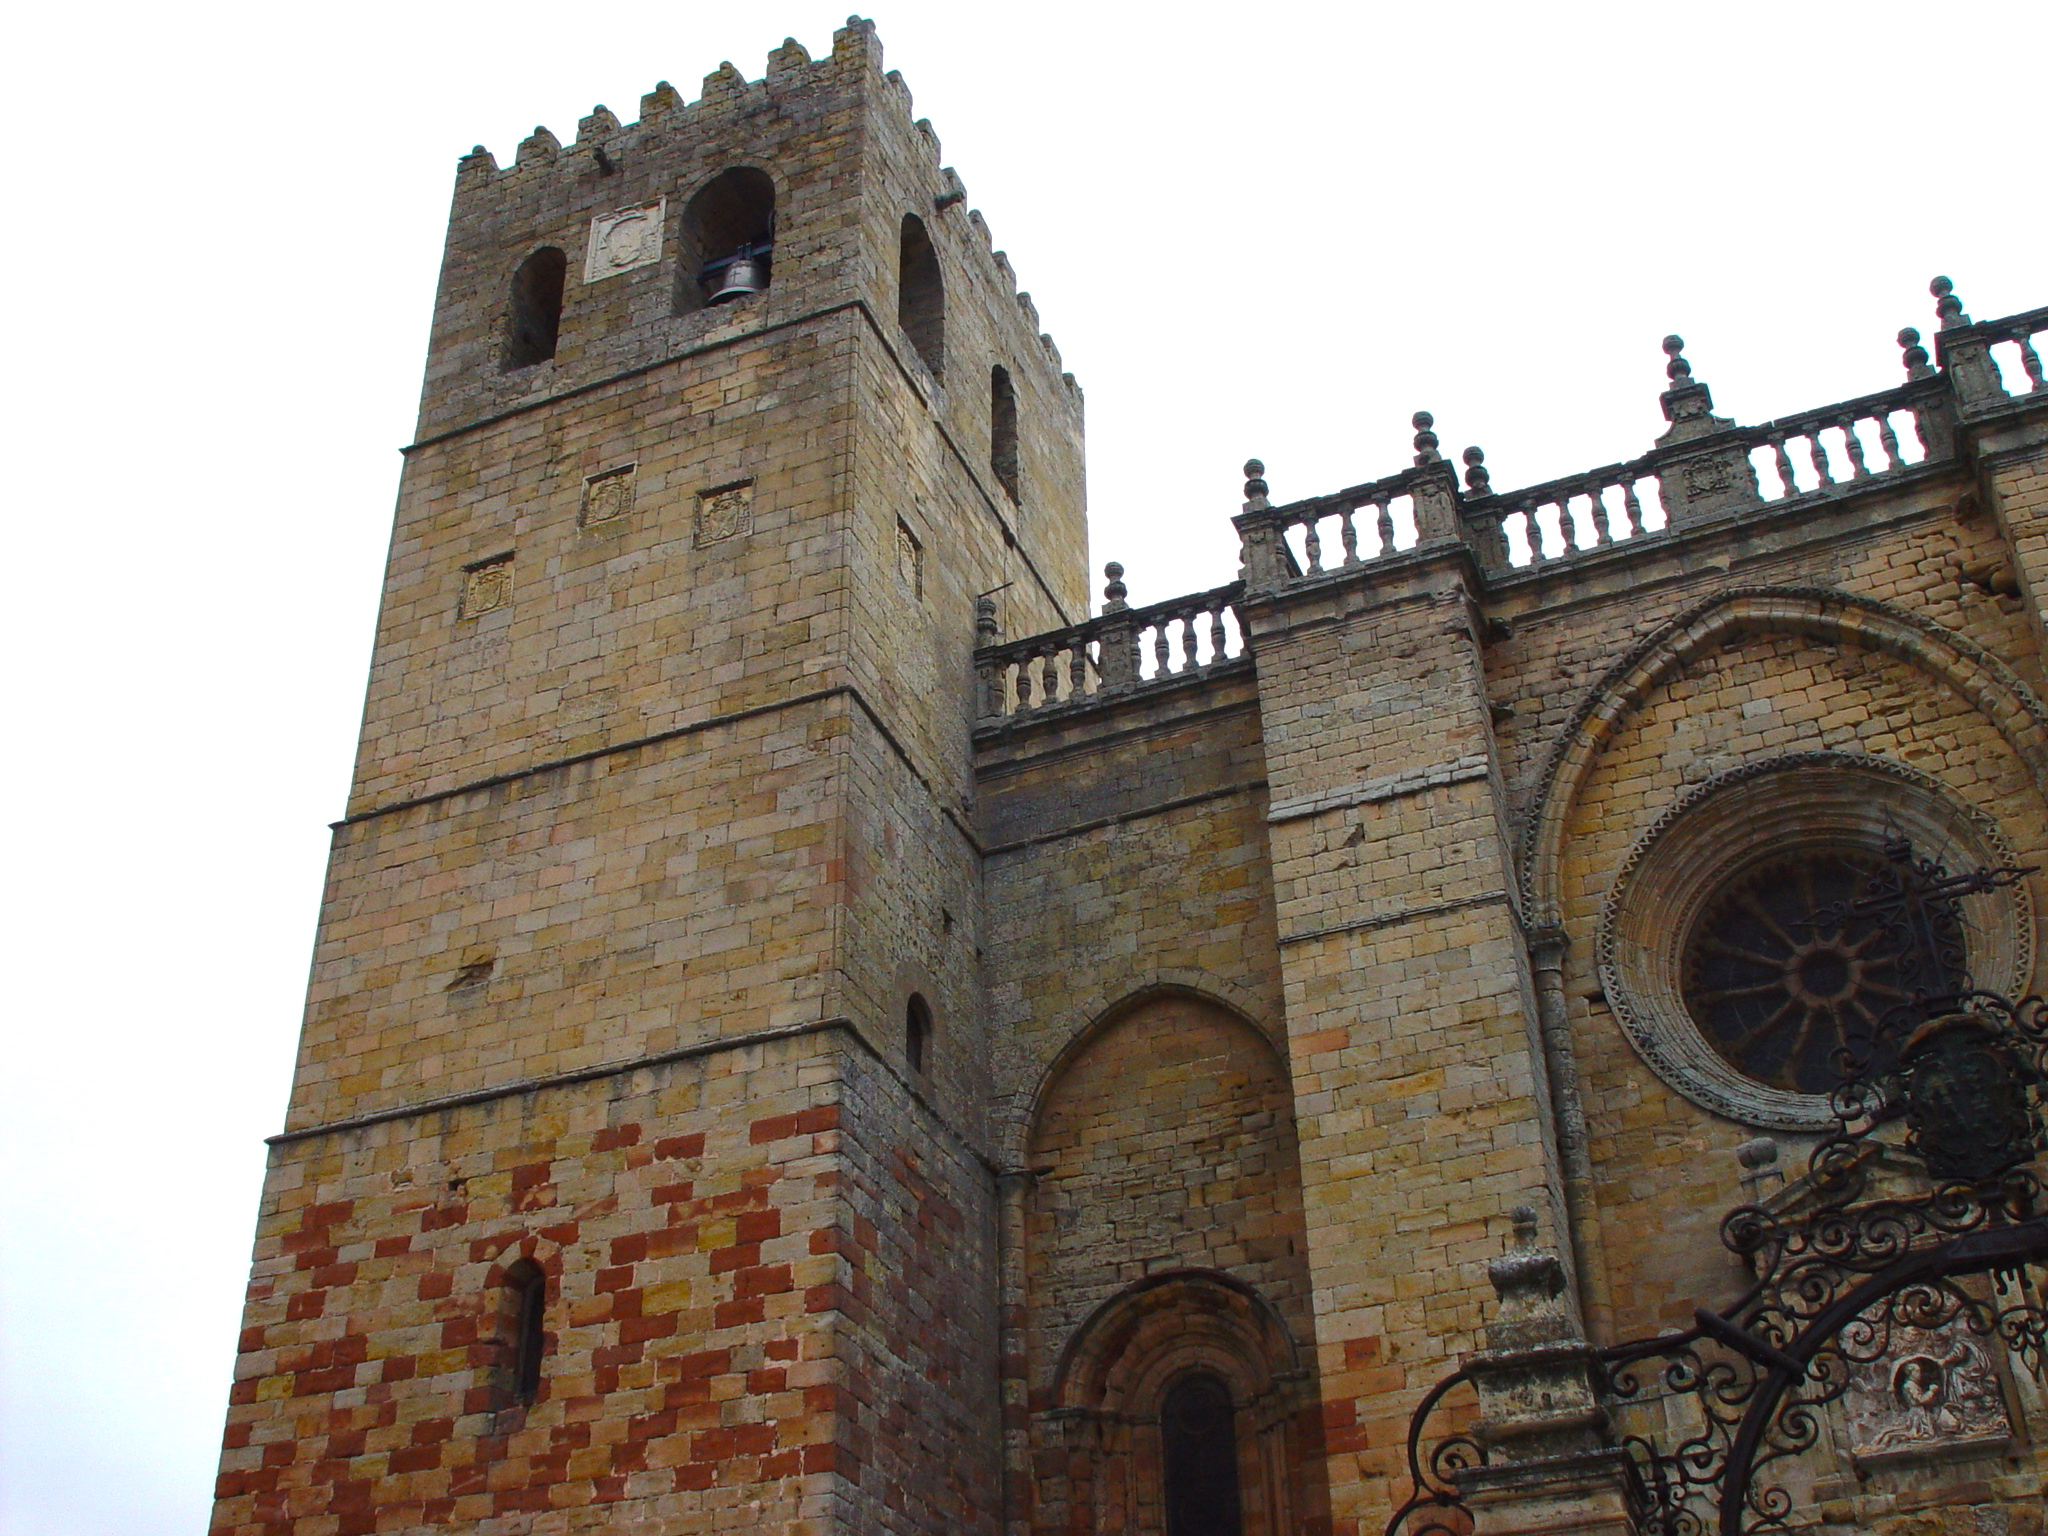 SIGÜENZA CATHEDRAL